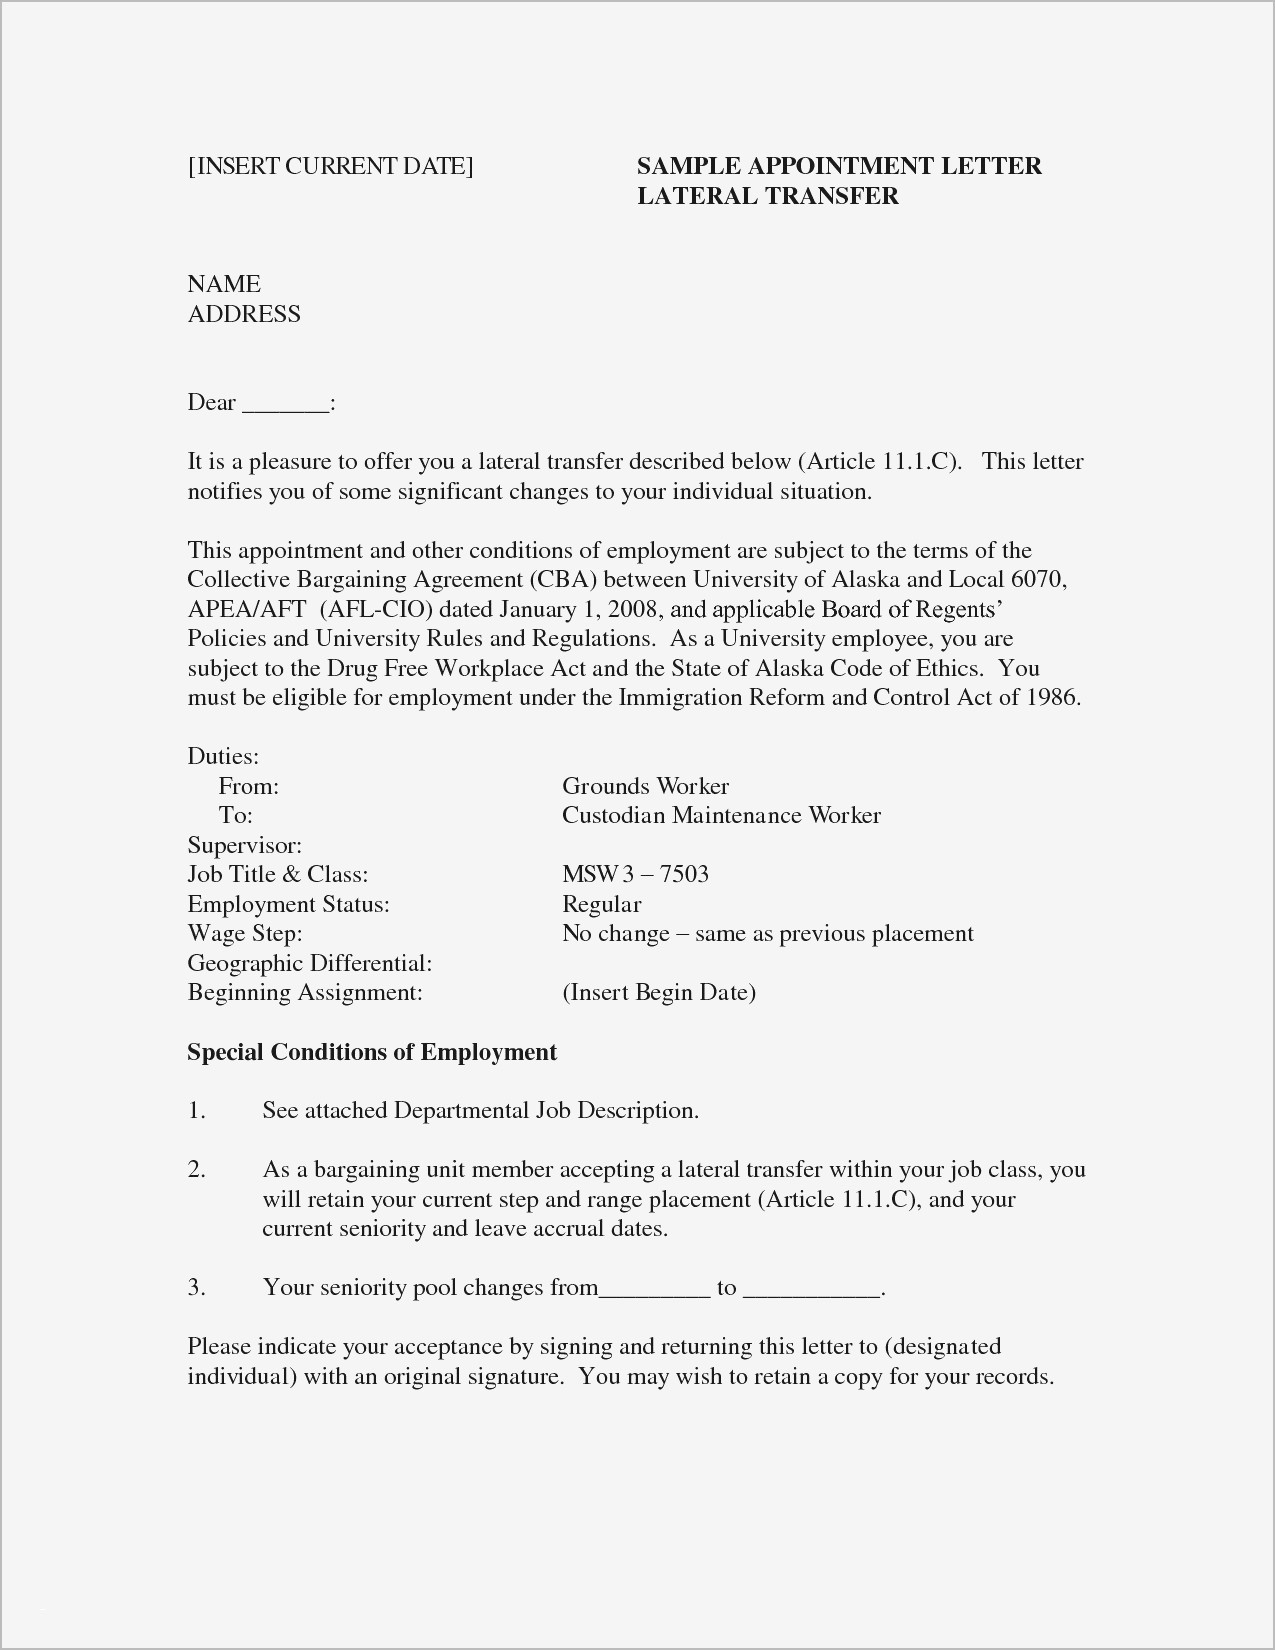 Resume Summary Ideas - Rofessional Summary Resume Best Summary Examples for Resume